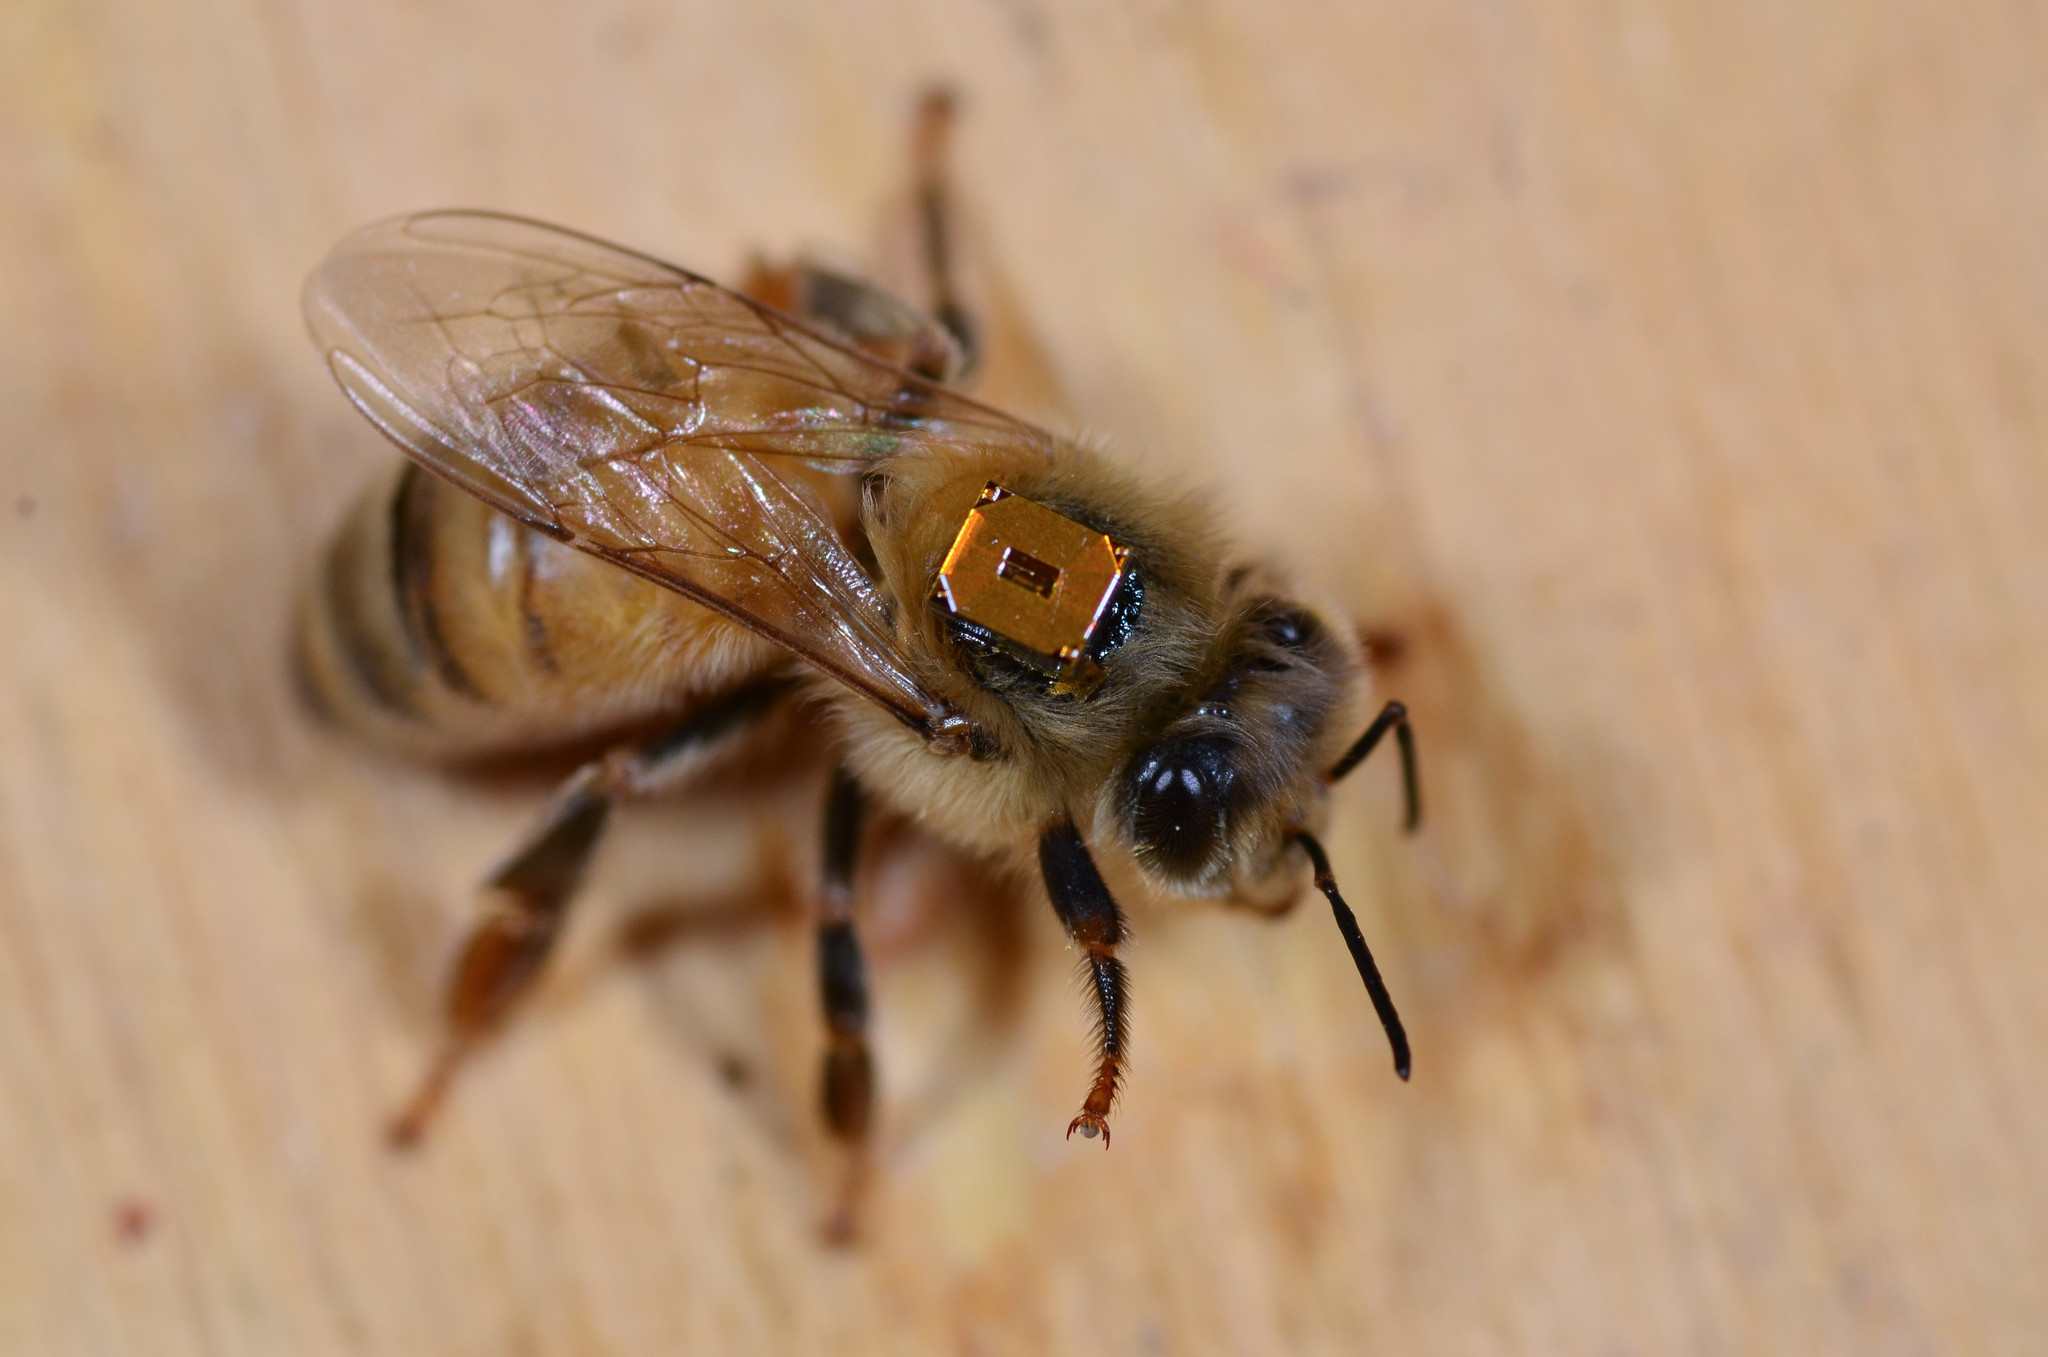 A honeybee worker has an RFID attached to its back that allows York University researchers to monitor when it leaves and returns to the colony, as well as when it no longer is active and presumed dead.